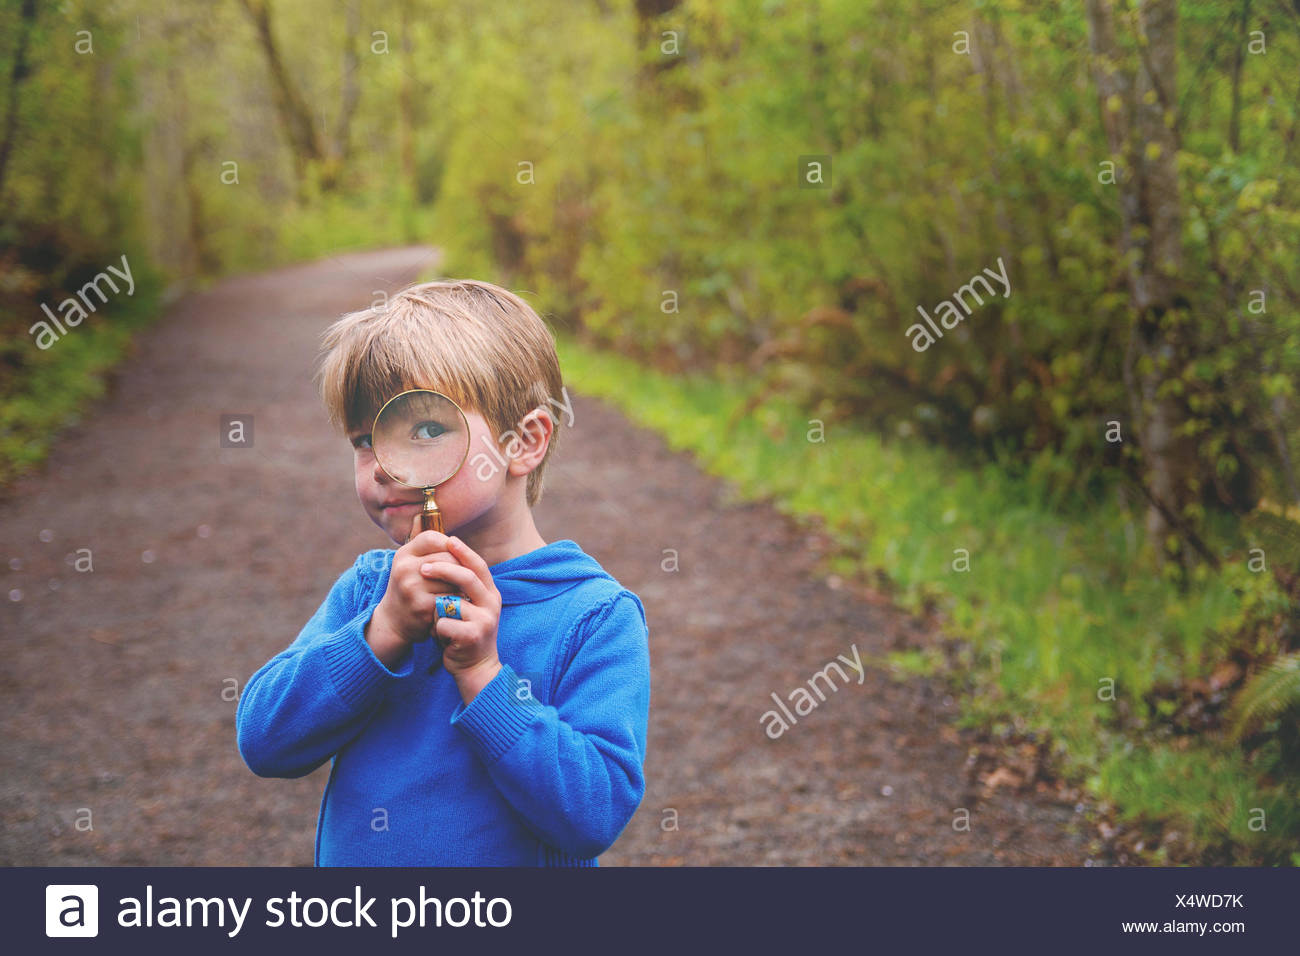 Boy (4-5) looking through magnifying glass on nature trail - Stock Image